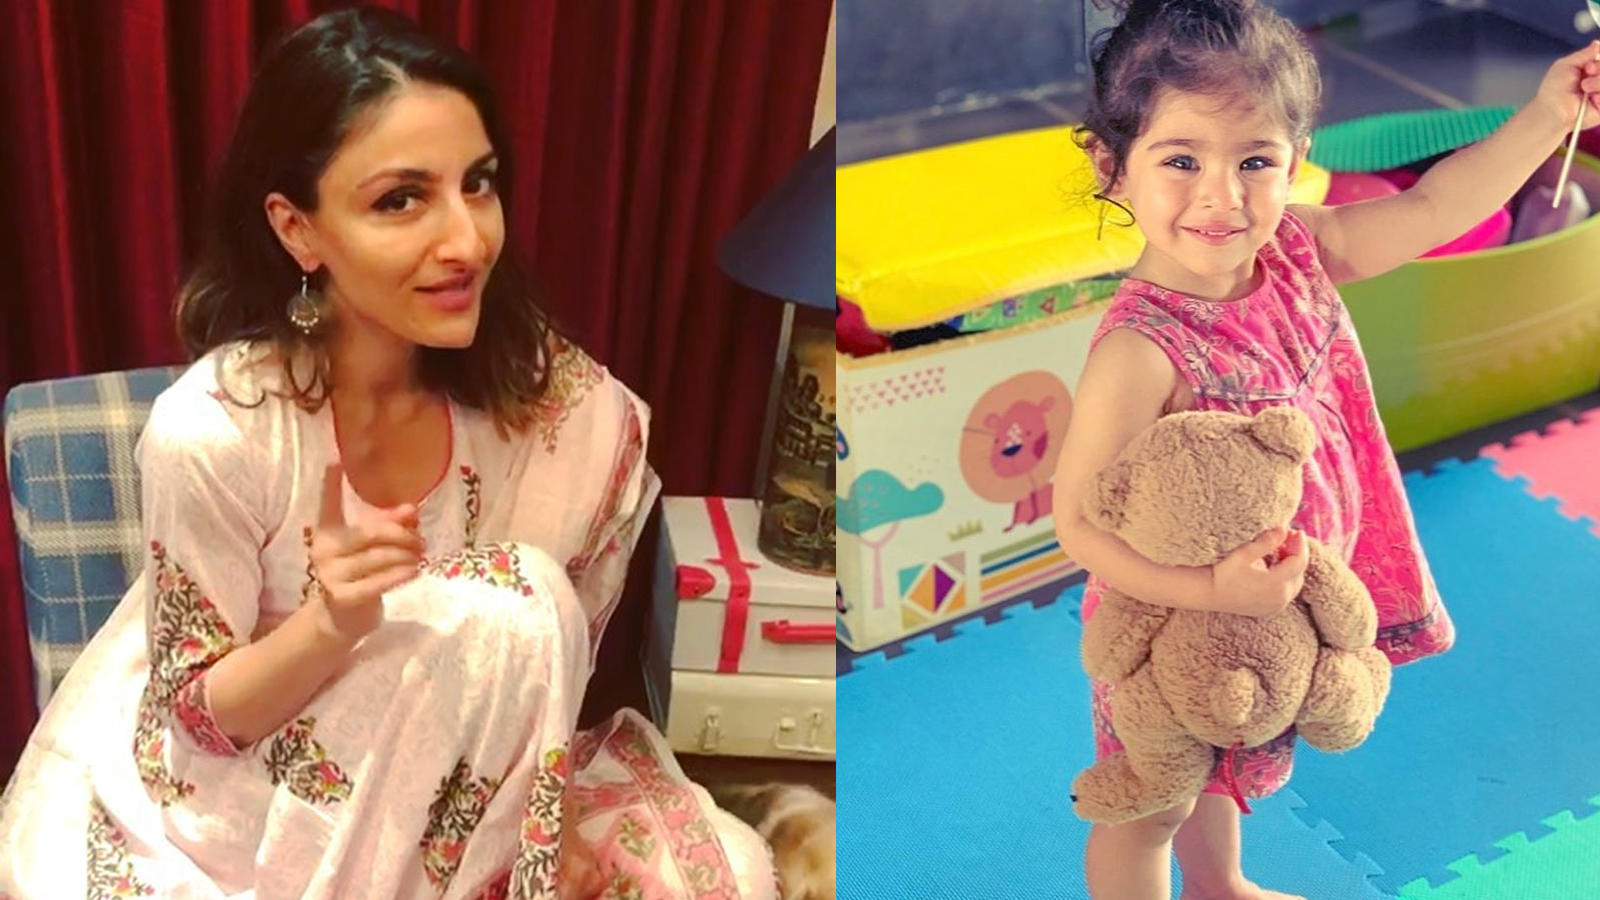 Soha Ali Khan says her little daughter Inaaya is crazy about lipsticks